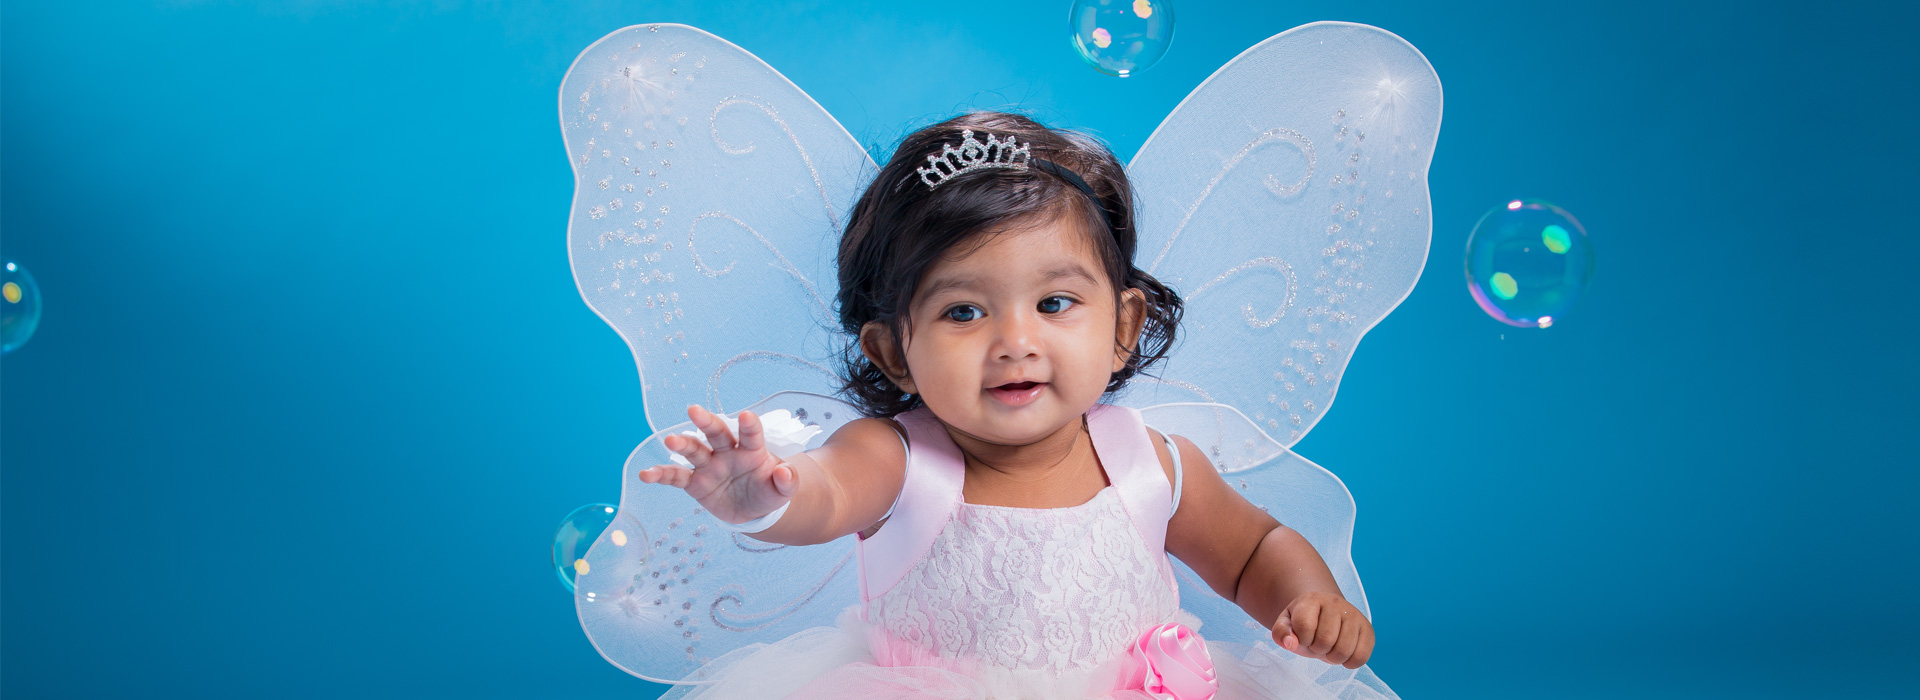 kids photography, new born and baby portrait photographers